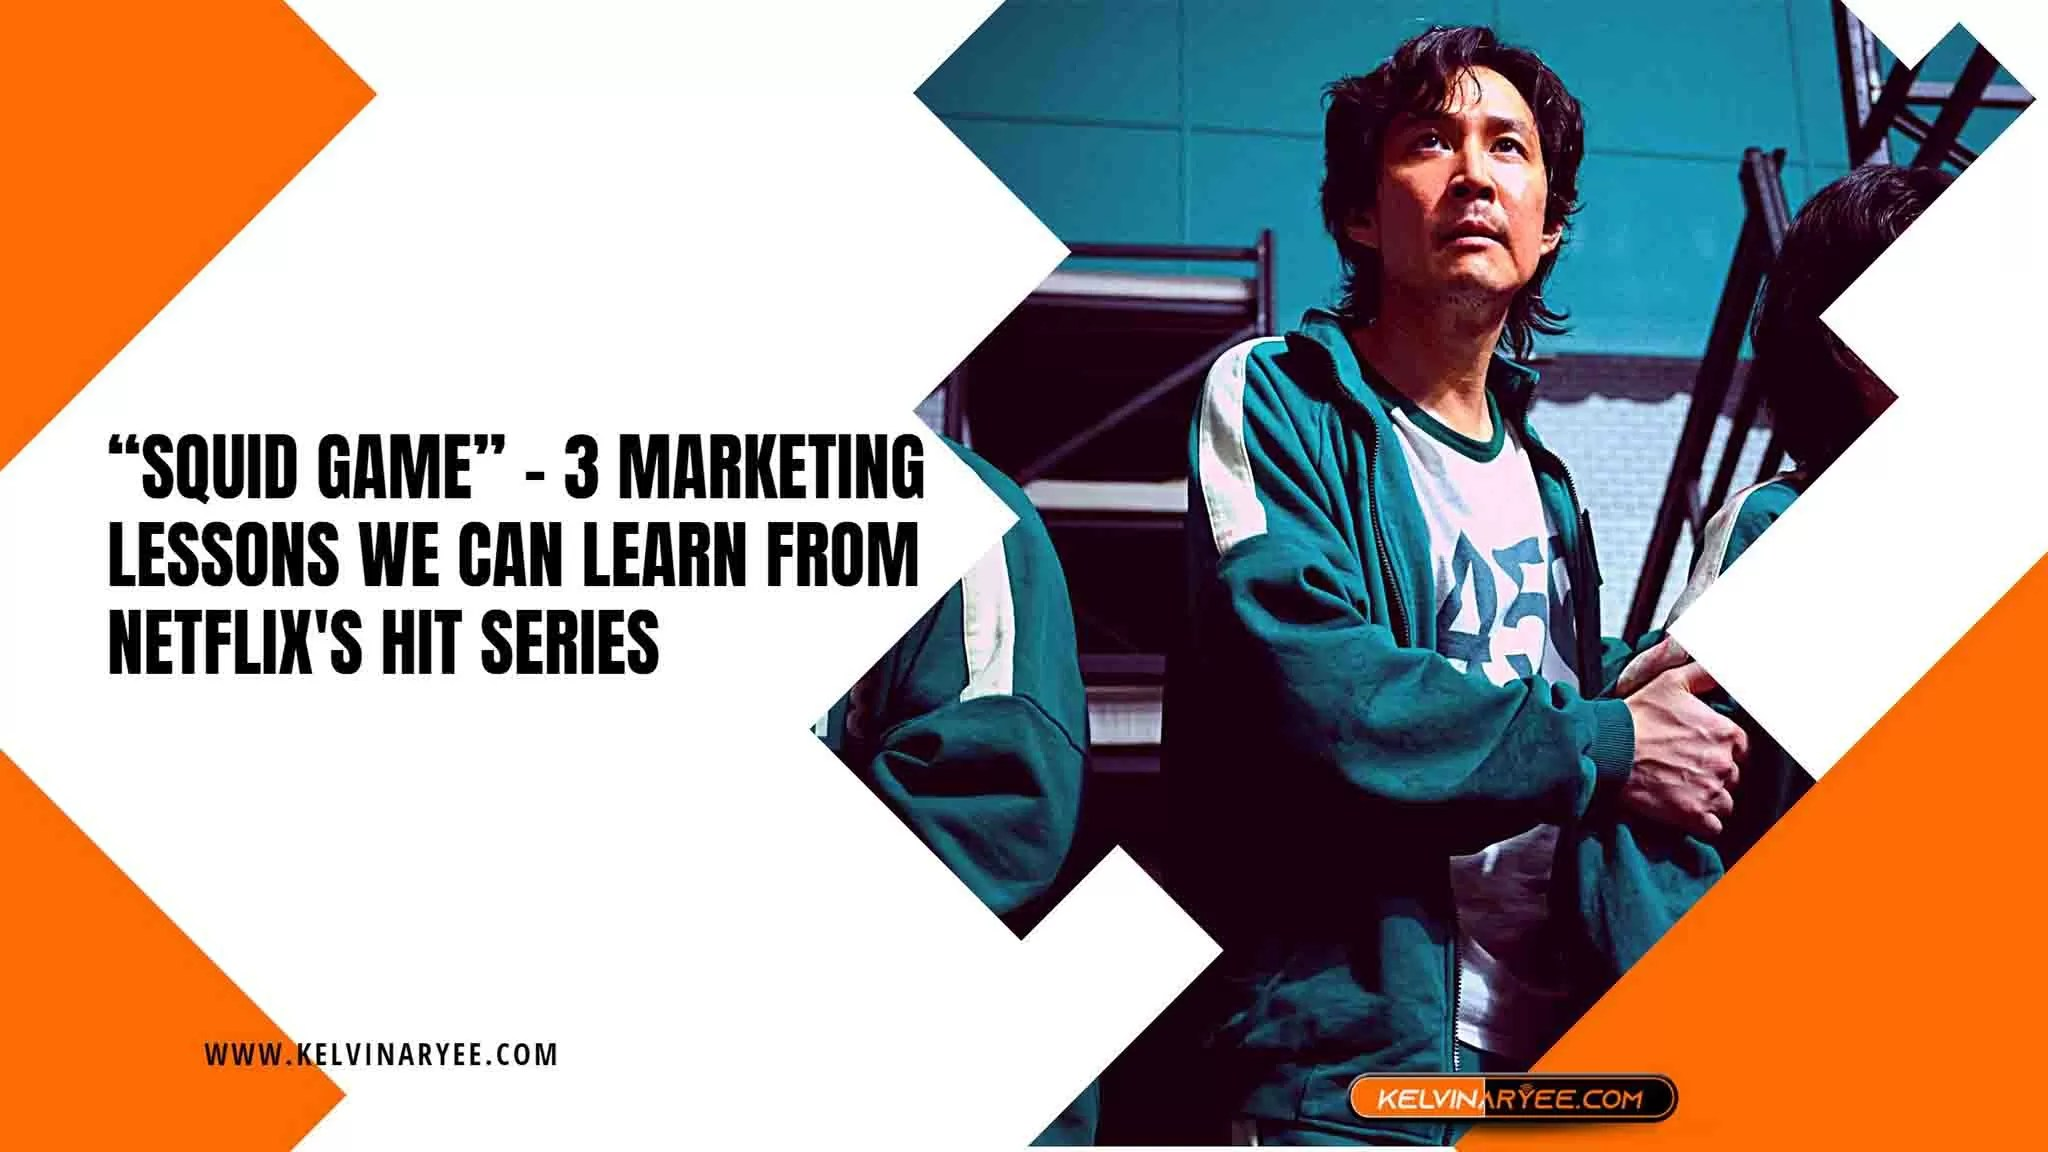 """""""Squid Game"""" - 3 Marketing Lessons We Can Learn from Netflix's Hit Series"""